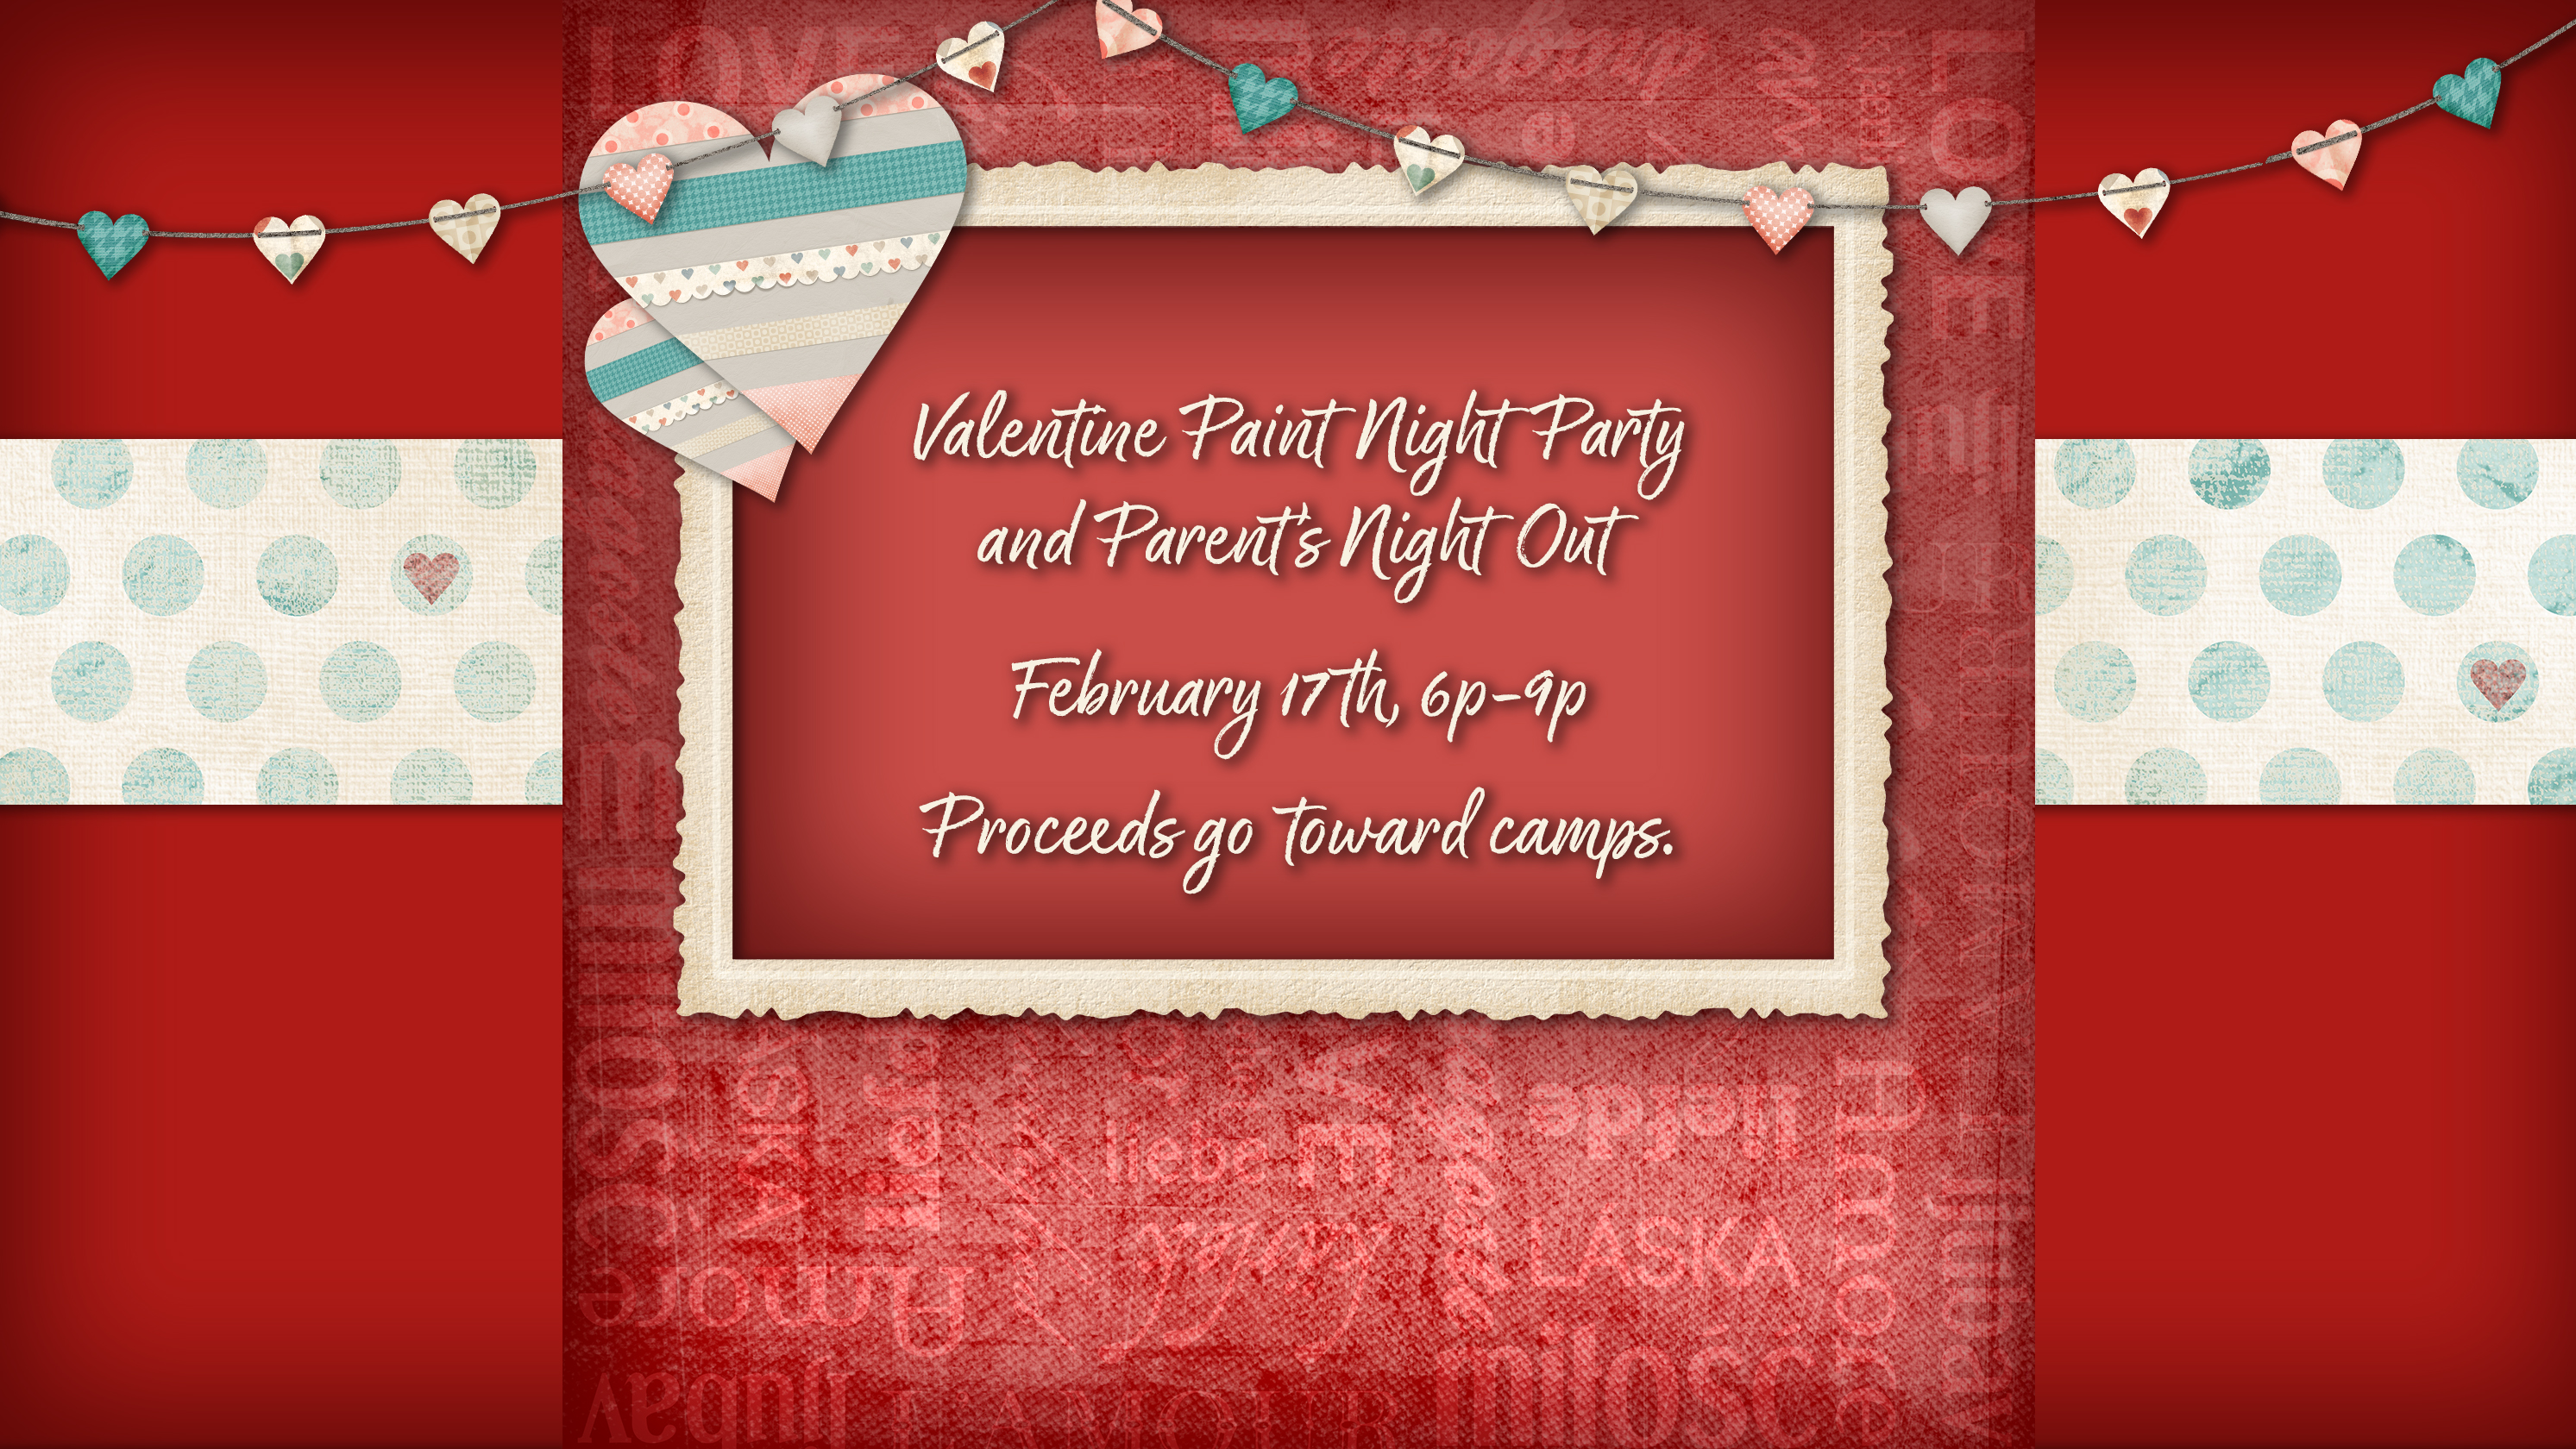 February parents night out 16 x 9